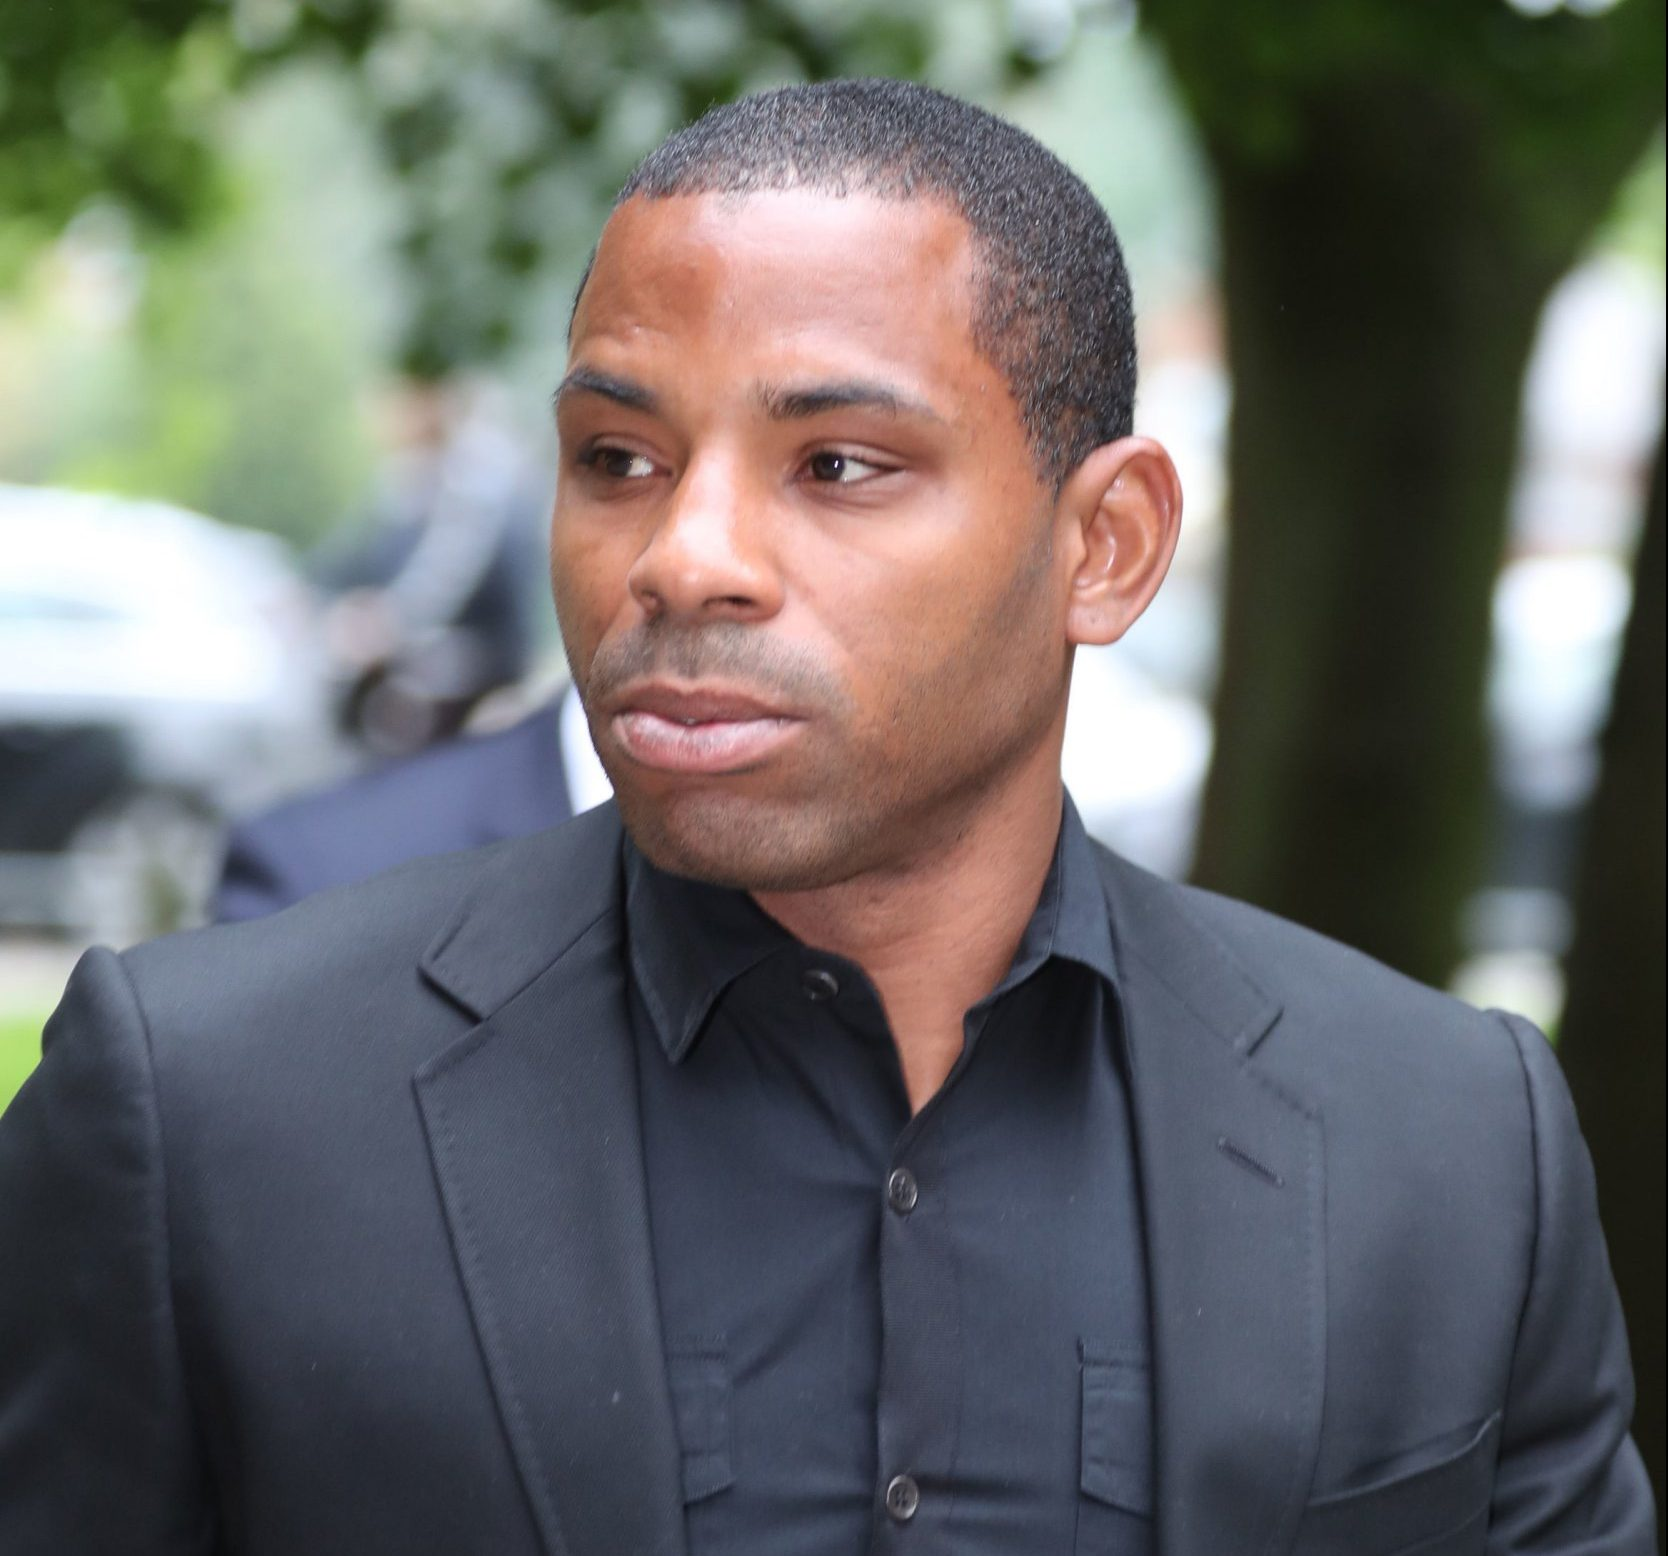 Crystal Palace captain Jason Puncheon arrives at Staines Magistrates' Court where he is due to stand trial after a fight outside a nightclub. PRESS ASSOCIATION Photo. Picture date: Monday June 4, 2018. See PA story COURTS Puncheon. Photo credit should read: Steve Parsons/PA Wire